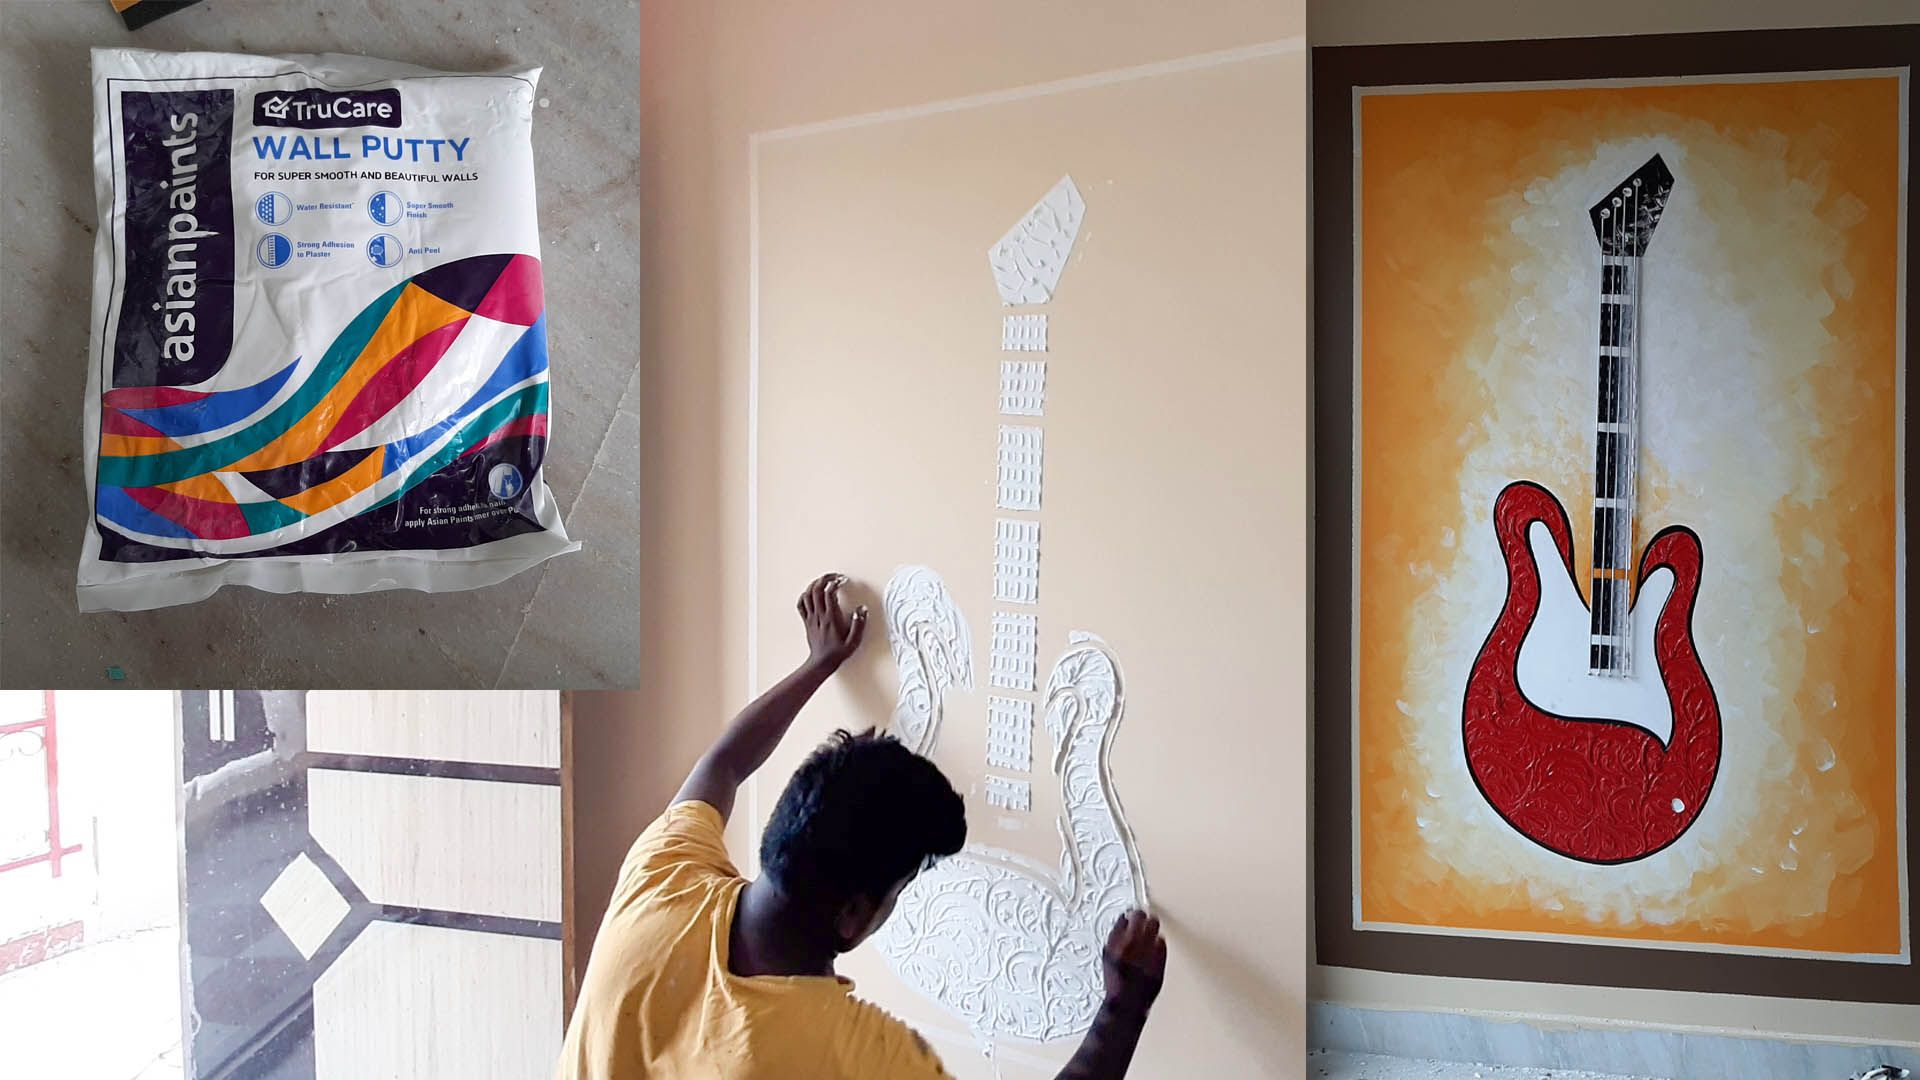 Electric Guitar Wall Mural Art Bass Relief Guitar Art Sculpture Mural Wall Art Simple Wall Art Creative Wall Painting